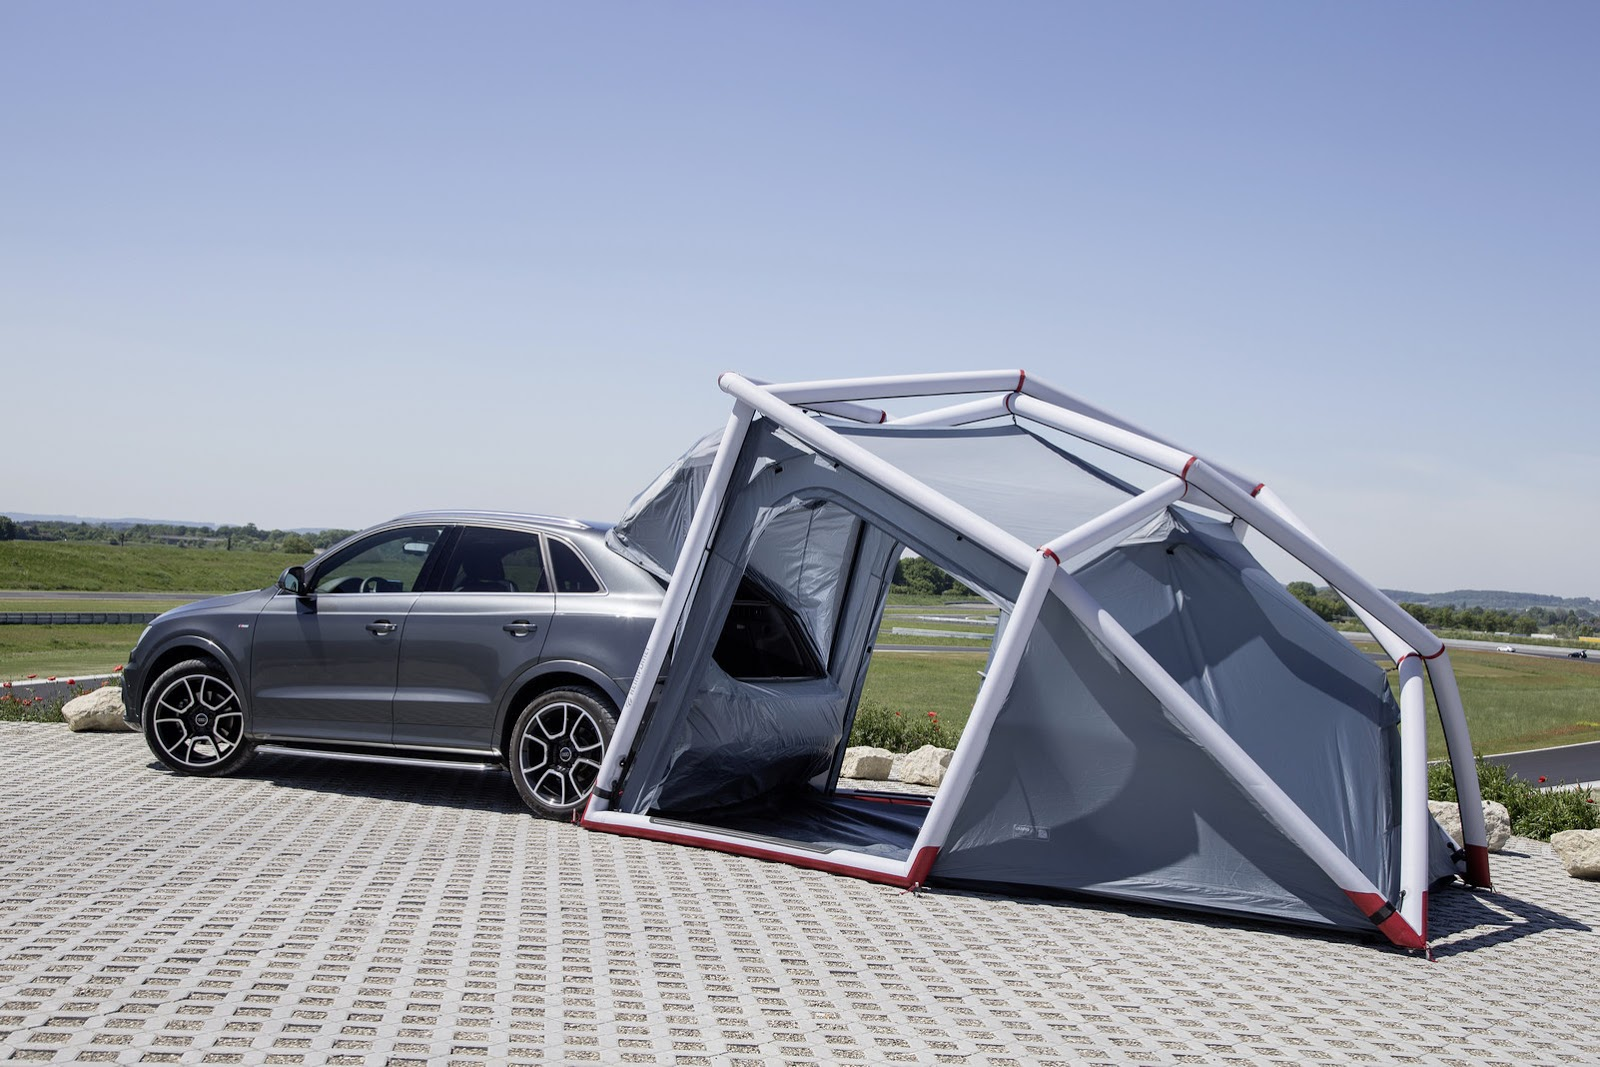 ... Audi Q3 C&ing Tent ... & Audi Q3 Shows Its Outdoorsy Side with Camping Tent at Worthersee ...